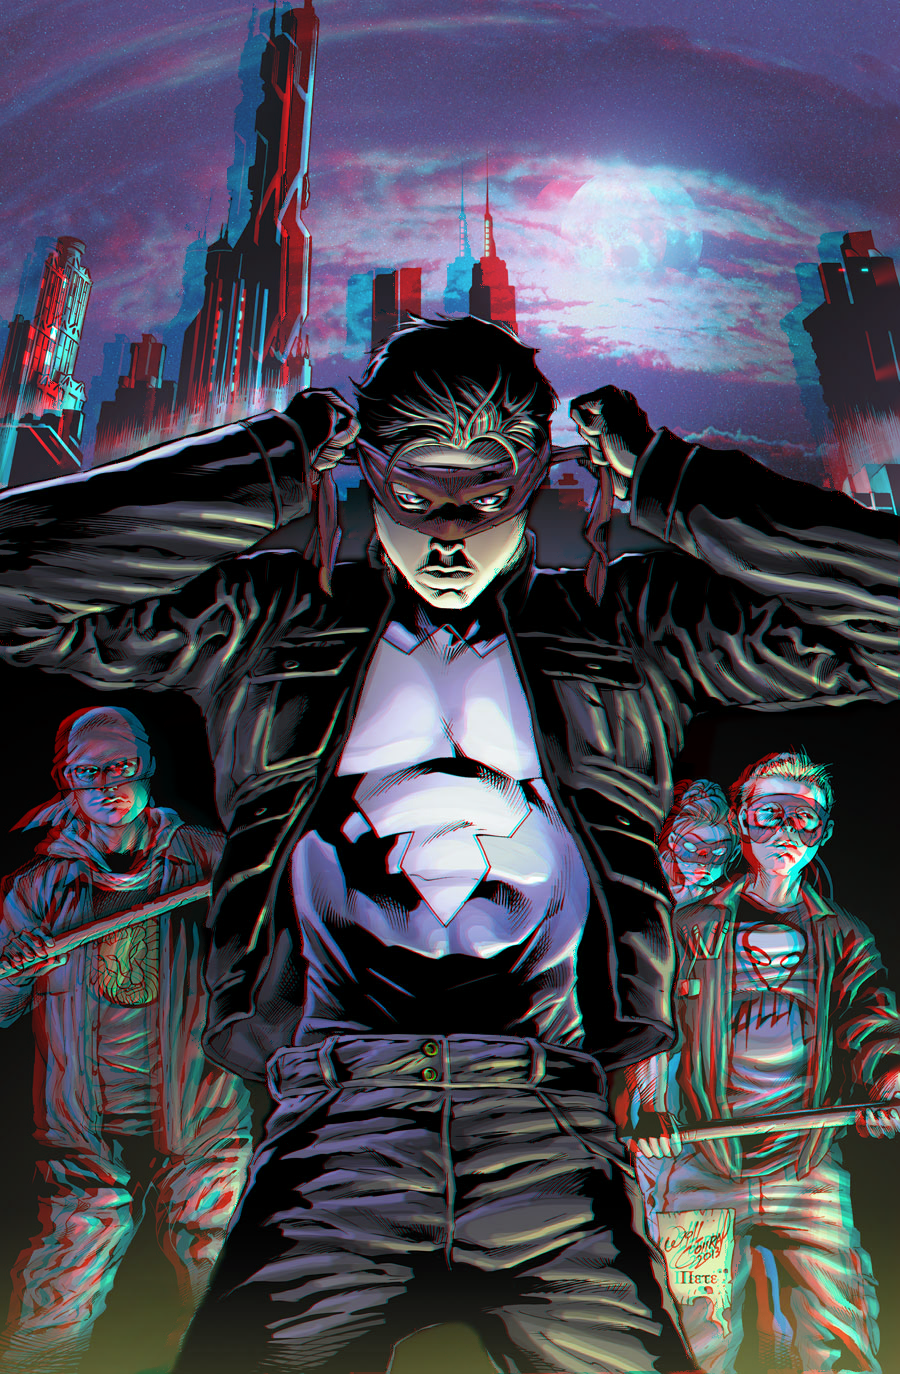 nightwing_zero_year_in_3d_anaglyph_by_xmancyclops-d70y4g0 dans 3D